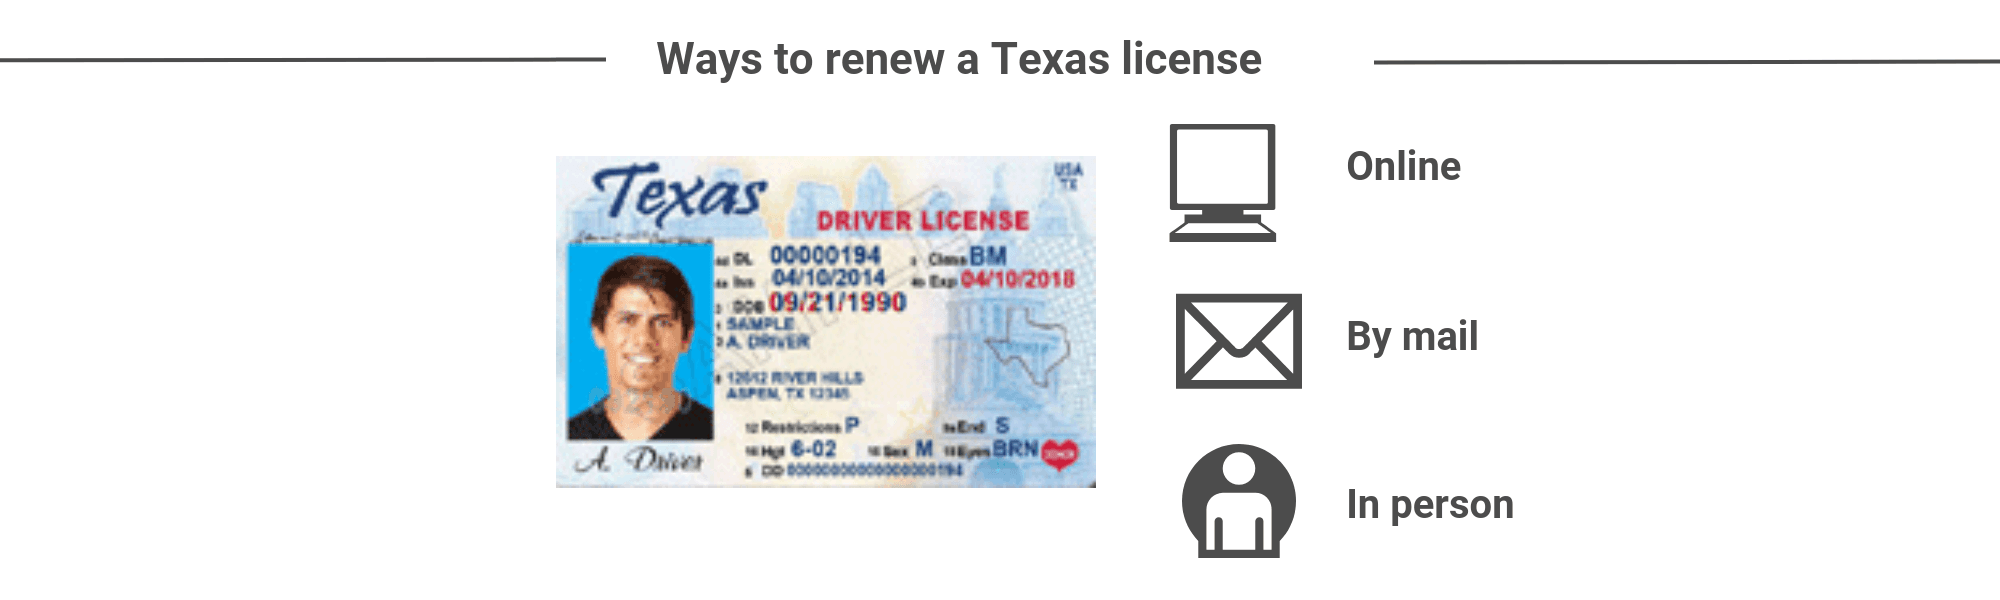 drivers license in texas renewal